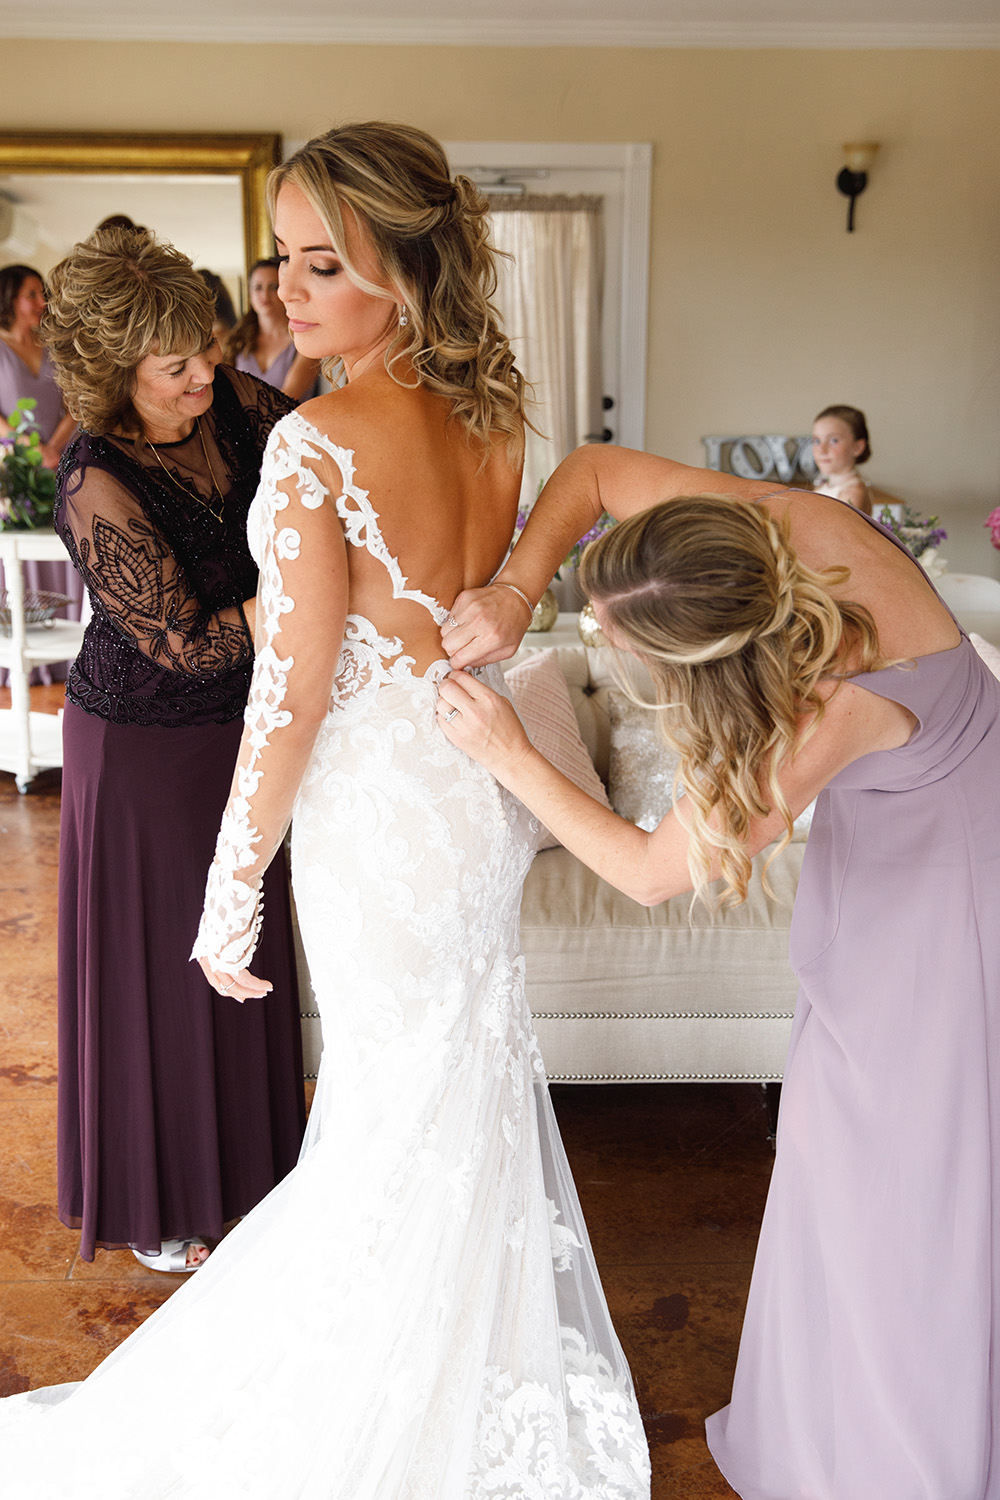 Mother of bride and bridesmaid helping bride into her long-sleeved lace gown.